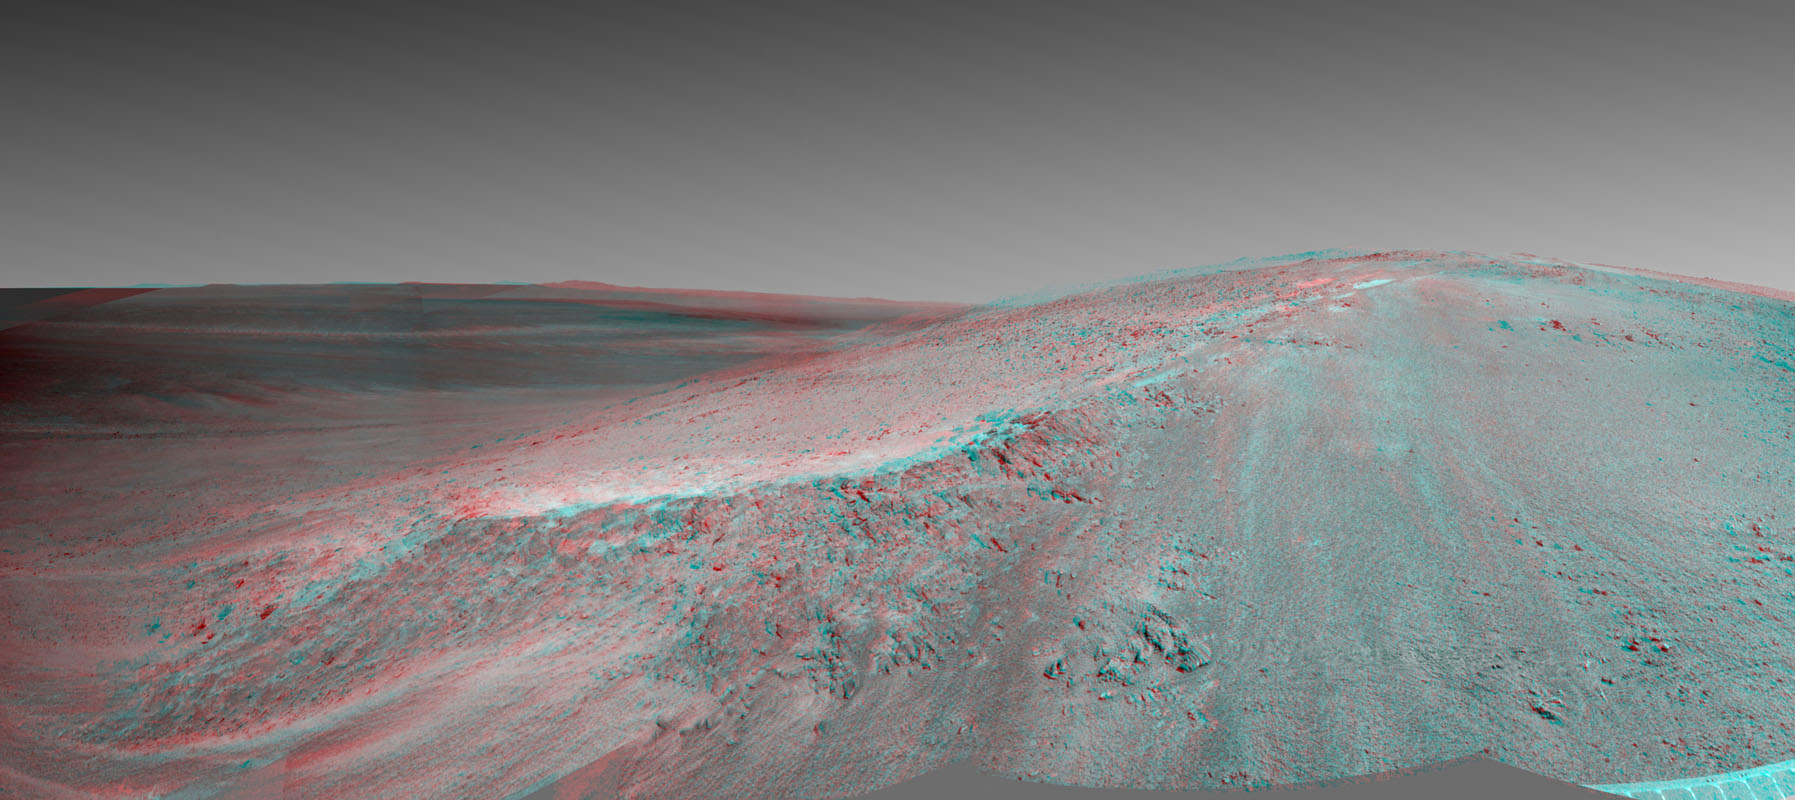 This stereo view shows the 'Murray Ridge' portion of the western rim of Endeavour Crater on Mars. You need 3D glasses to view this image from NASA's Mars Exploration Rover Opportunity.